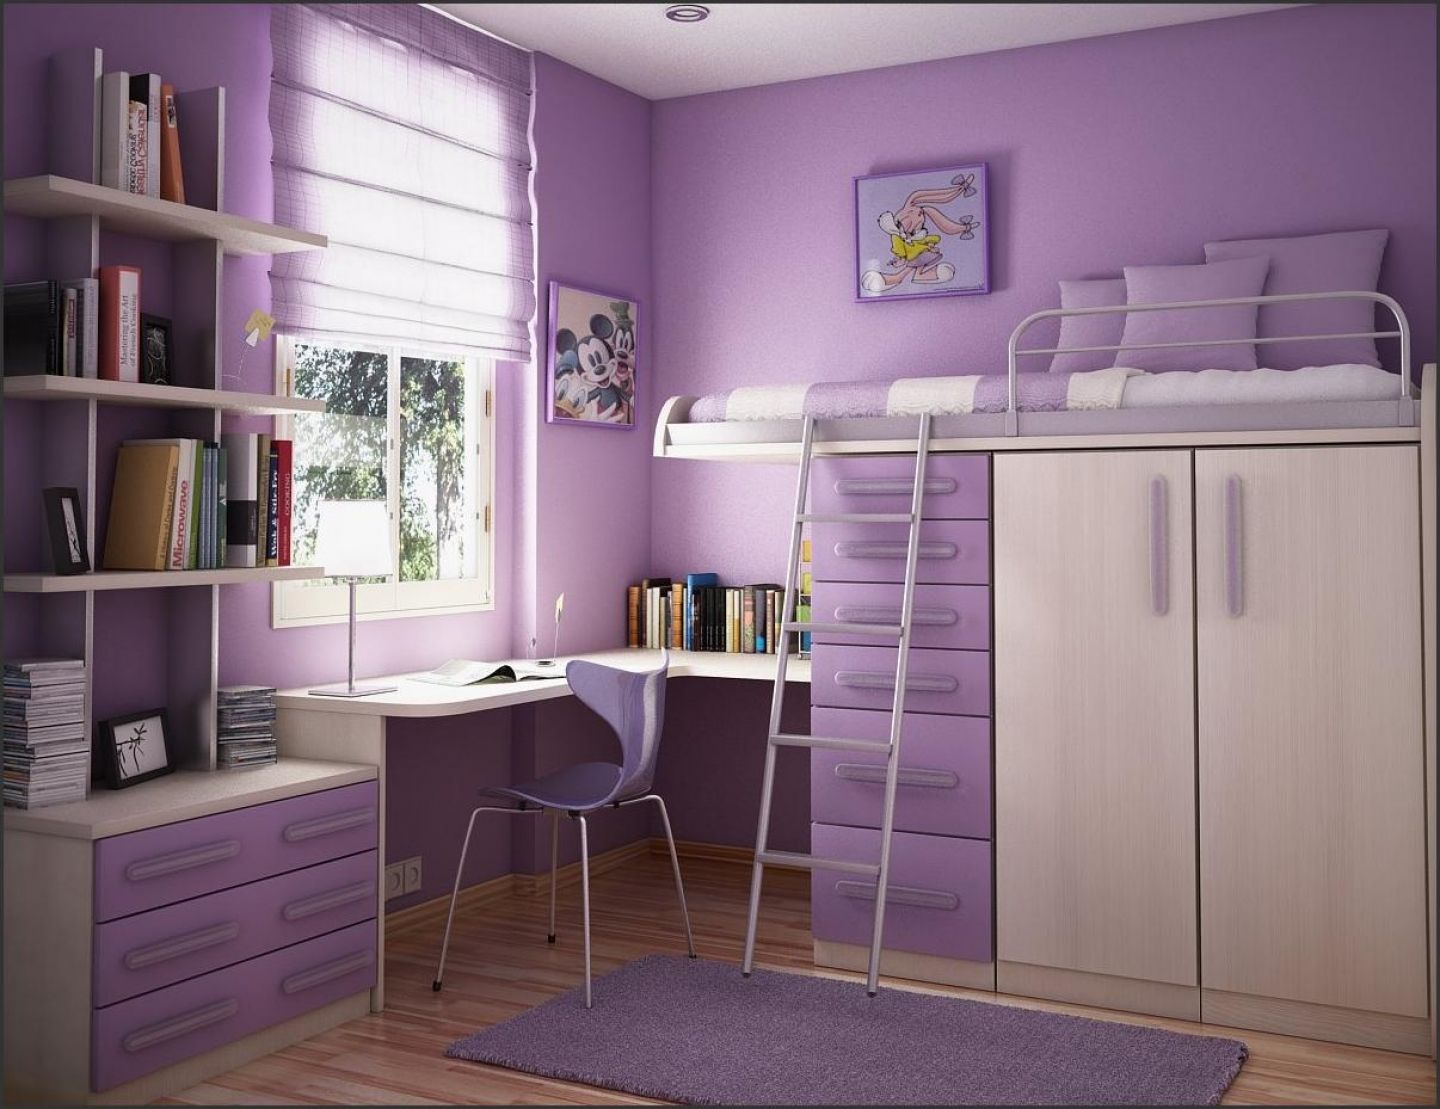 Cool Room Designs For Teenage Girls Impressive Teen Girl Bedroom Decorating Ideas  0613 140358 Bedroom . Inspiration Design